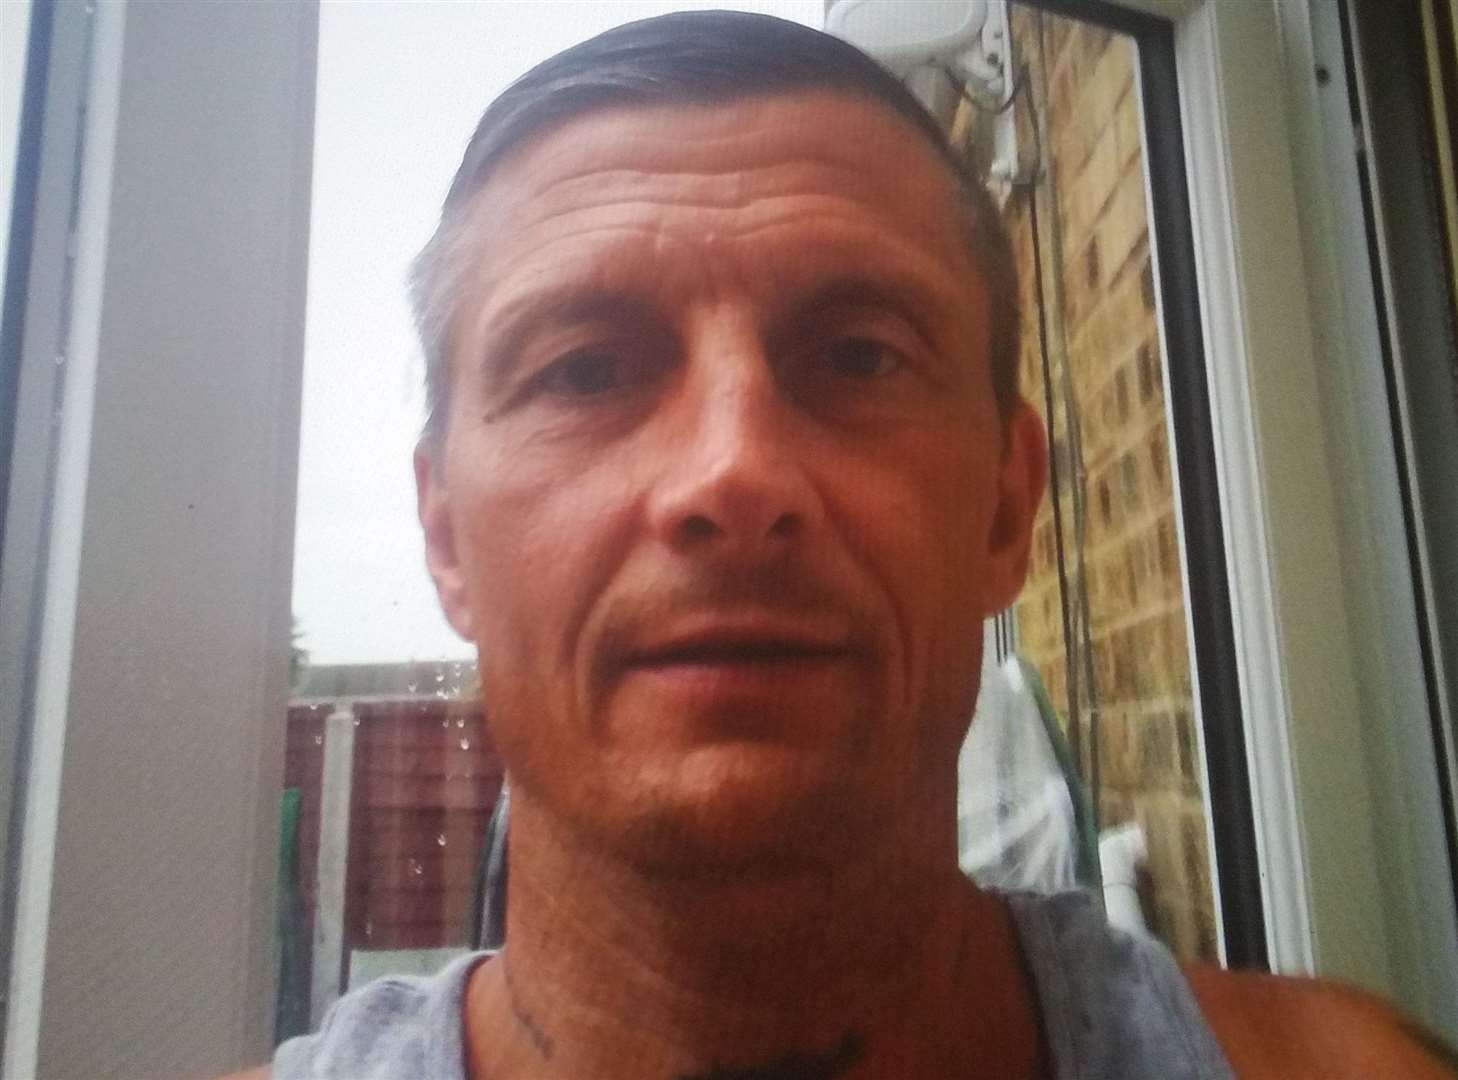 Jason Burgess was last seen at around 12.30pm on Thursday, January 17 in the Windsor Road area (6597339)